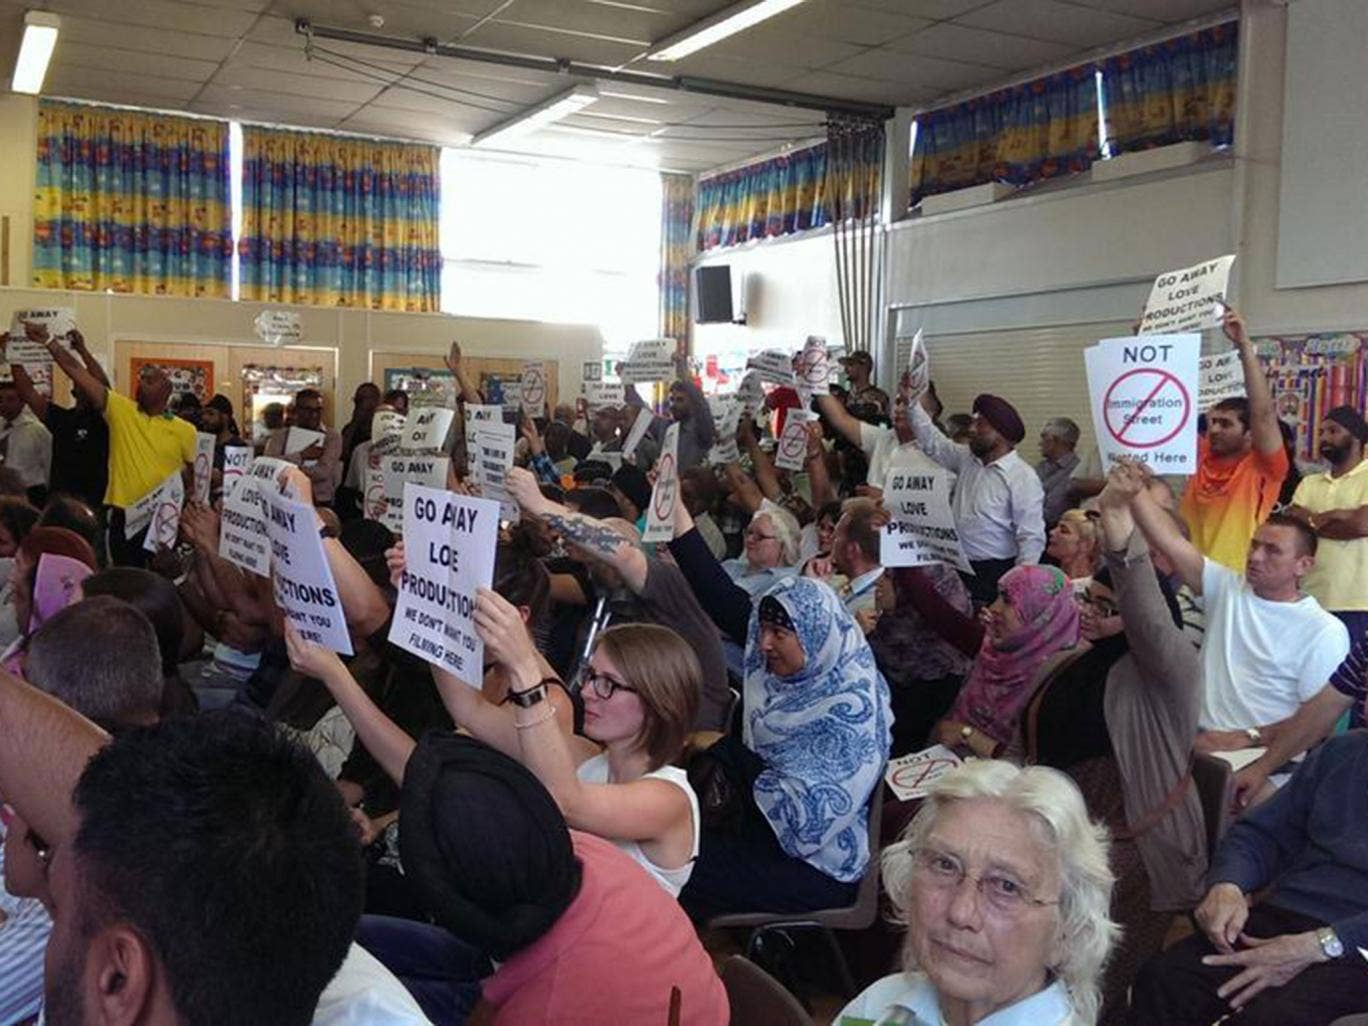 Residents of Derby Road in Southampton oppose filming of Channel 4 documentary Immigration Street in their community